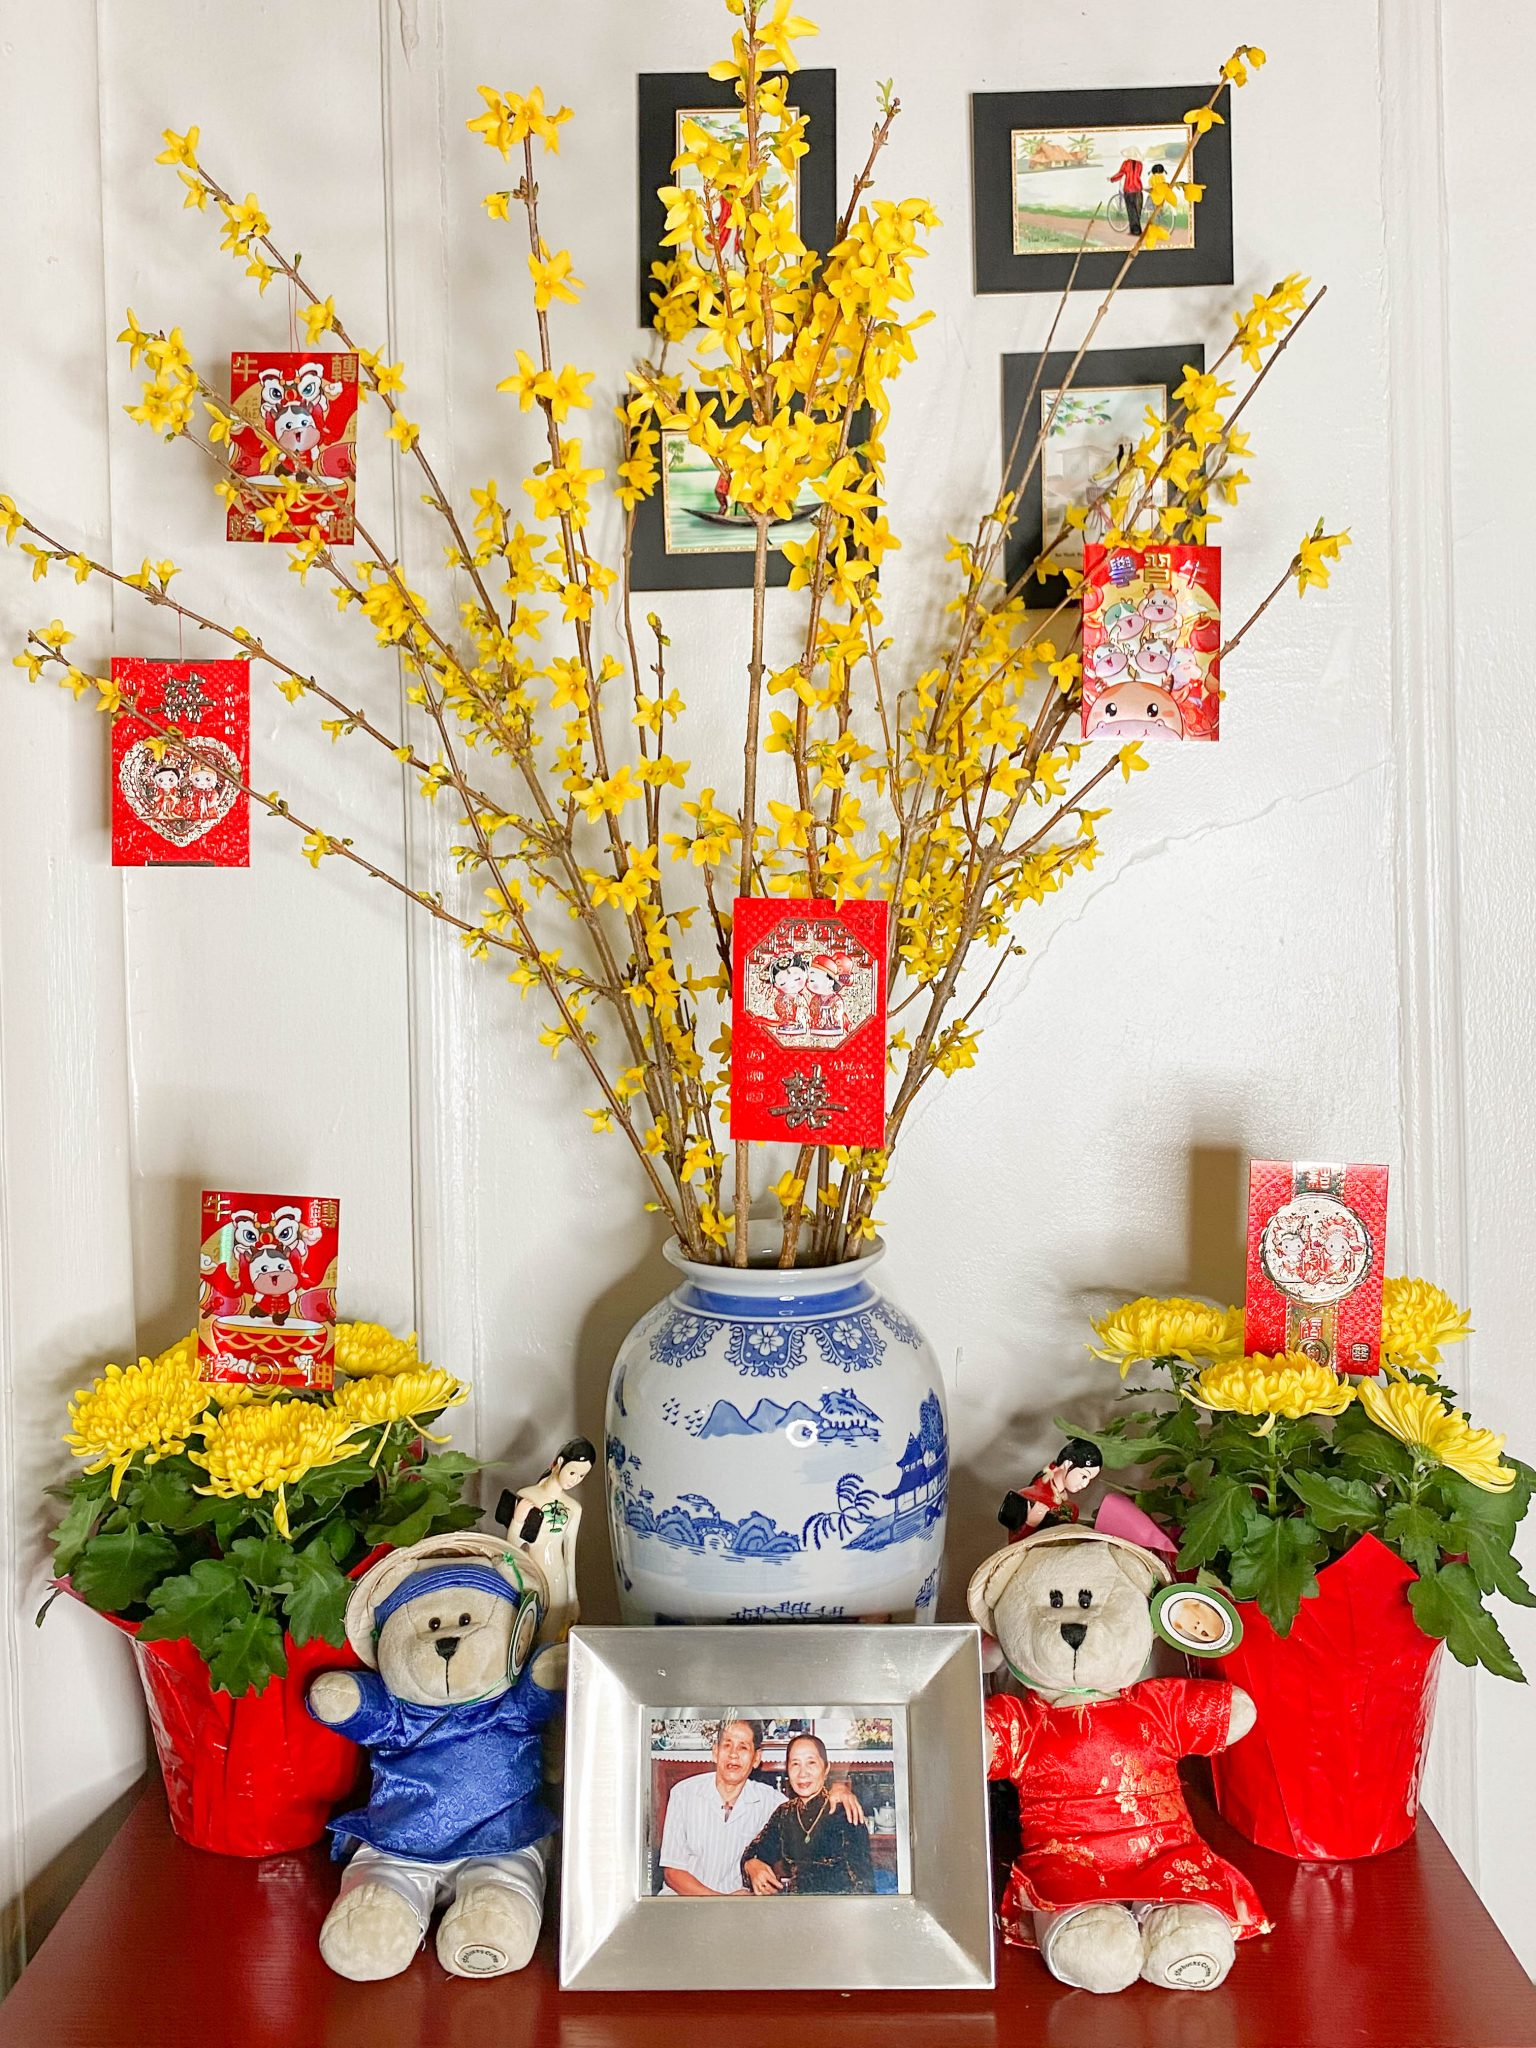 Happy Lunar New Year - Year of the Ox by Basically A Mess (photo of traditional Vietnamese Lunar New Year decorations)